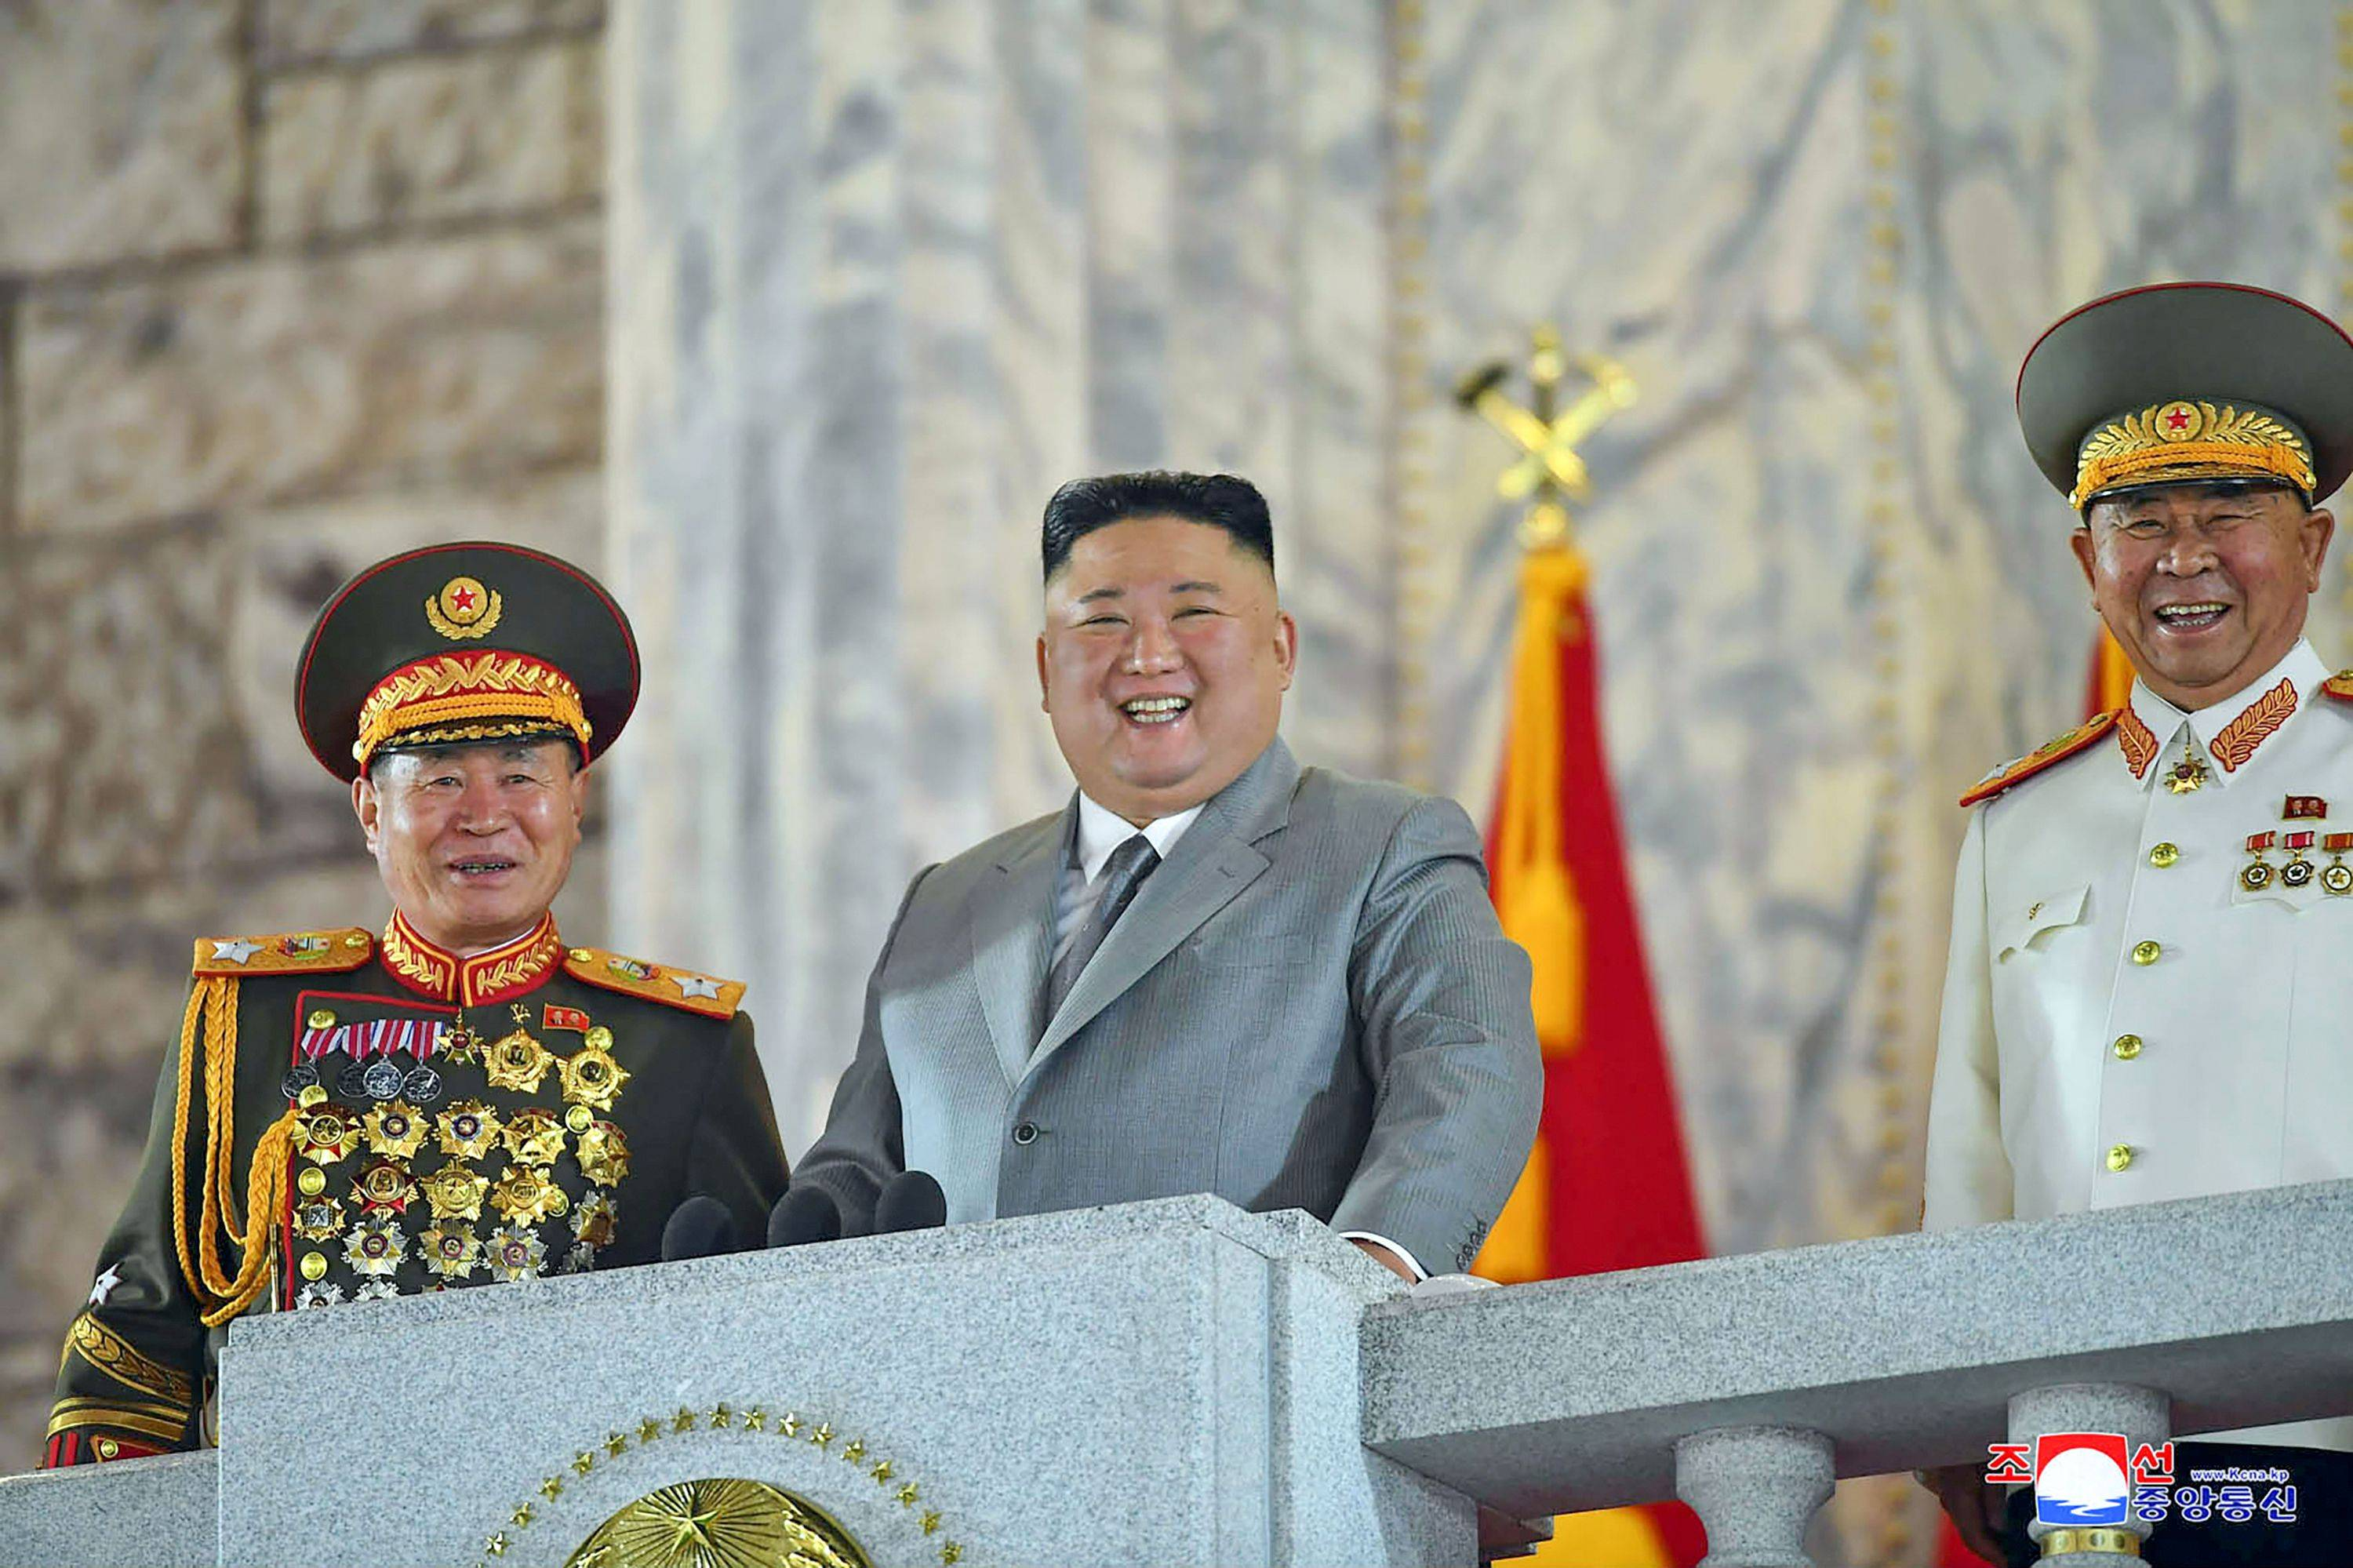 North Korean leader Kim Jong Un attends a military parade during a ceremony to mark the 75th anniversary of the Workers' Party of Korea, in Pyongyang's Kim Il Sung Square on Saturday. | KCNA / KNS / VIA AFP-JIJI